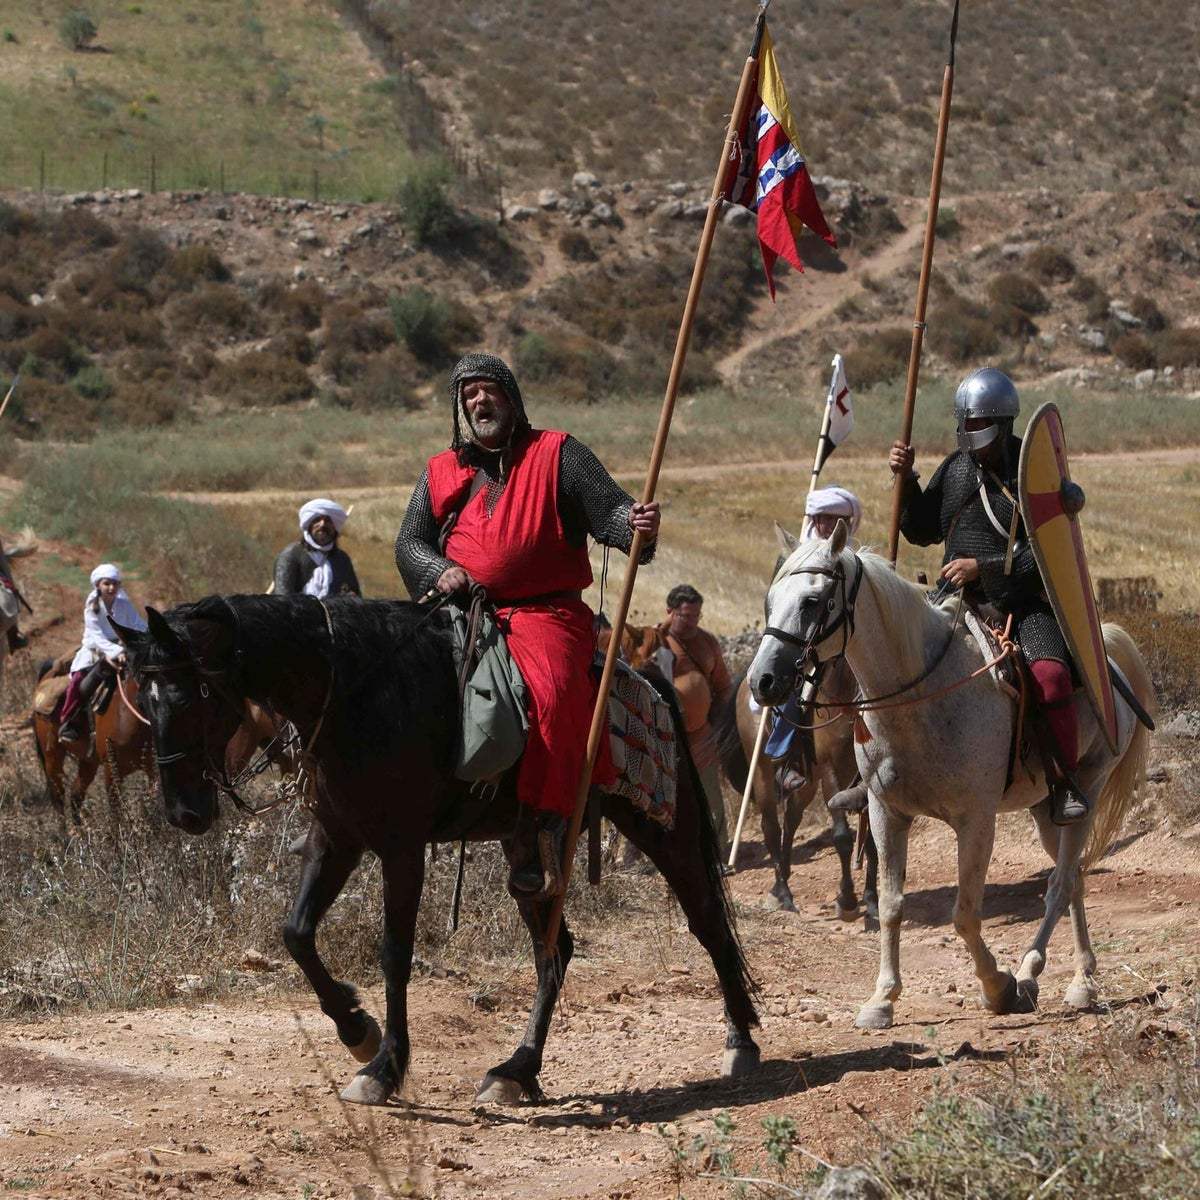 Israeli members of knight clubs, dressed in costumes ride horses on July 1, 2016 before taking part in the reenactment of the Battle of Hattin (aka the Horns of Hattin) in the ancient northern city of Tzipori to Horns of Hattin, an extinct volcano with several peaks. Israelis, mostly of Russian origin, took part in the reenactment of the battle that was fought on the same day in 1187, when Arab Sultan Salaheddin's army crashed the Crusader forces on his way to Tiberias.